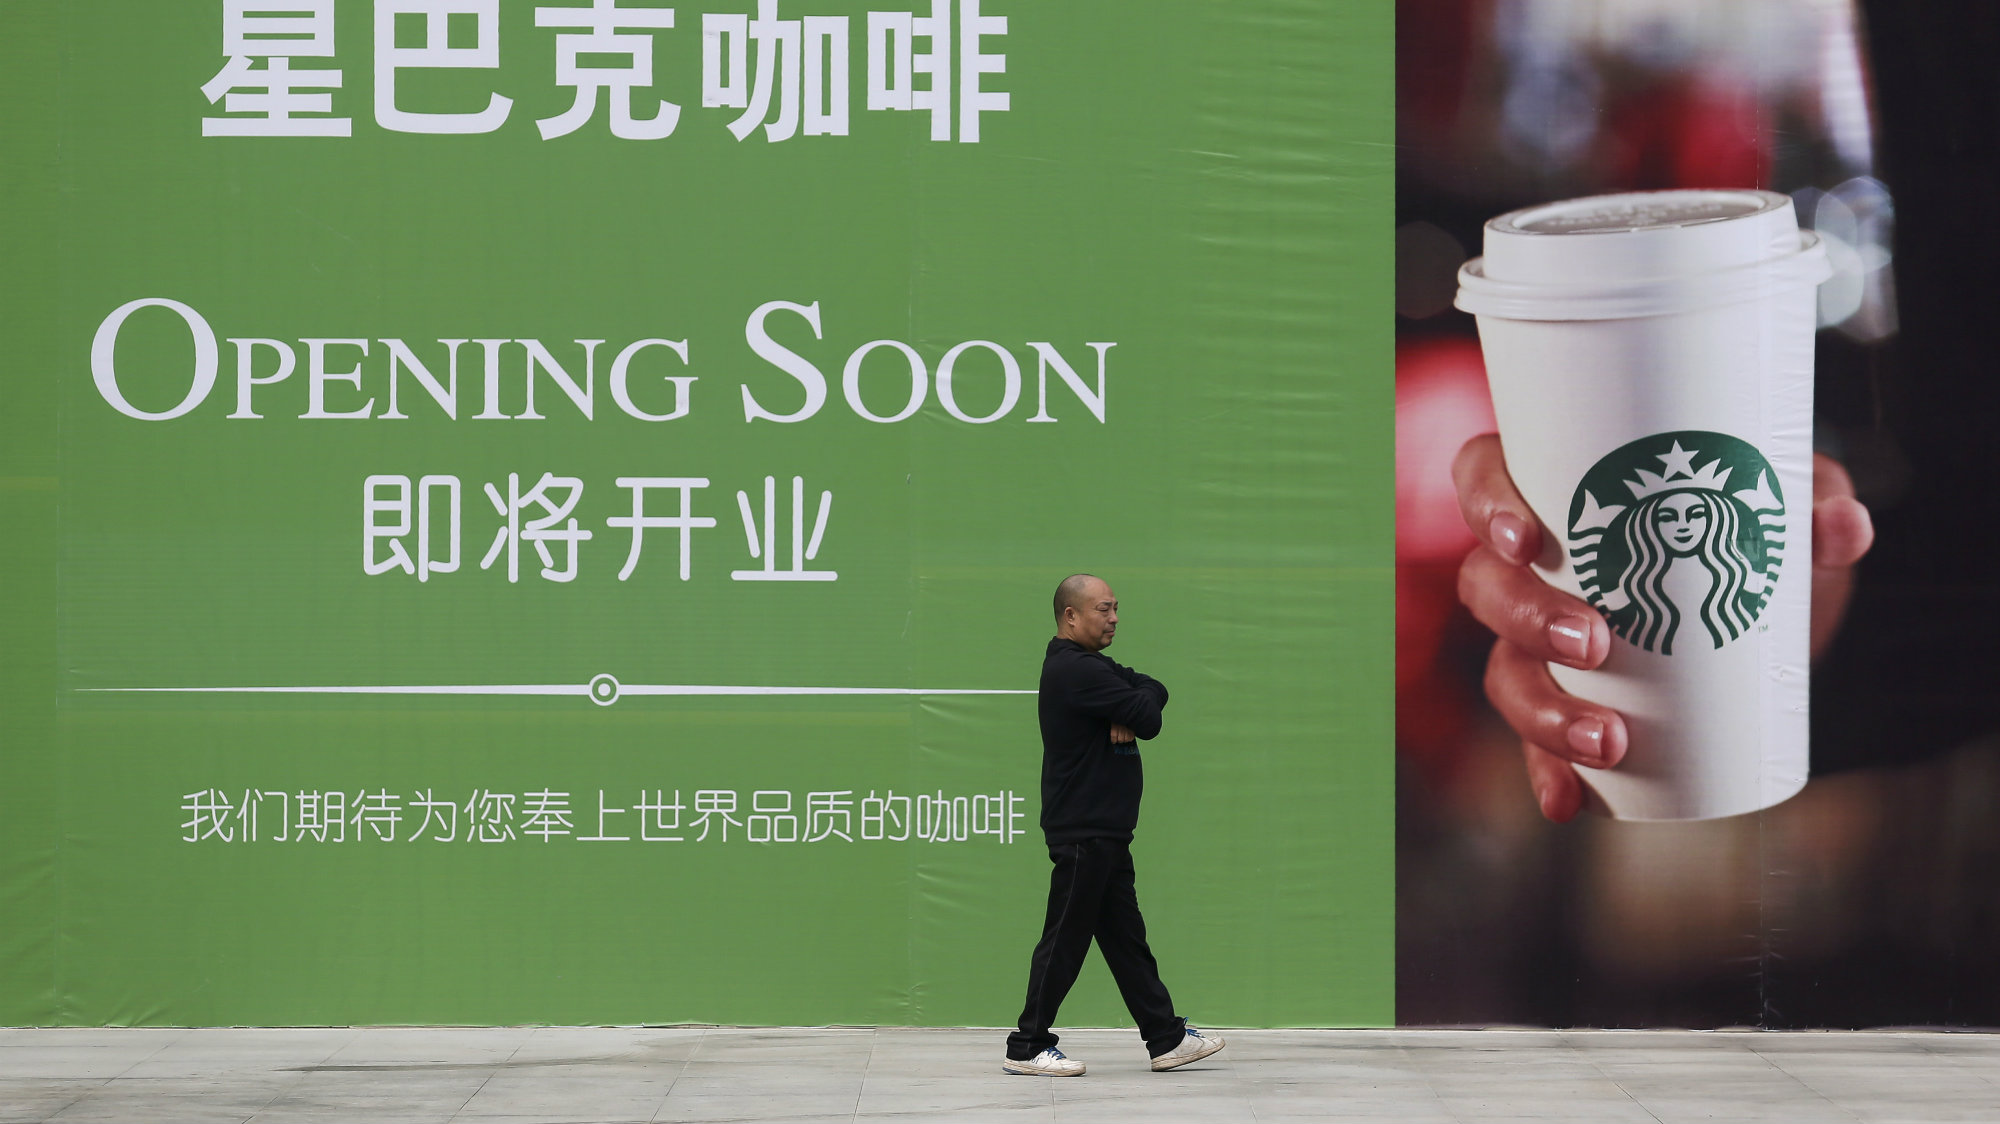 A man walks past a forthcoming Starbucks billboard in Wuhan, China.